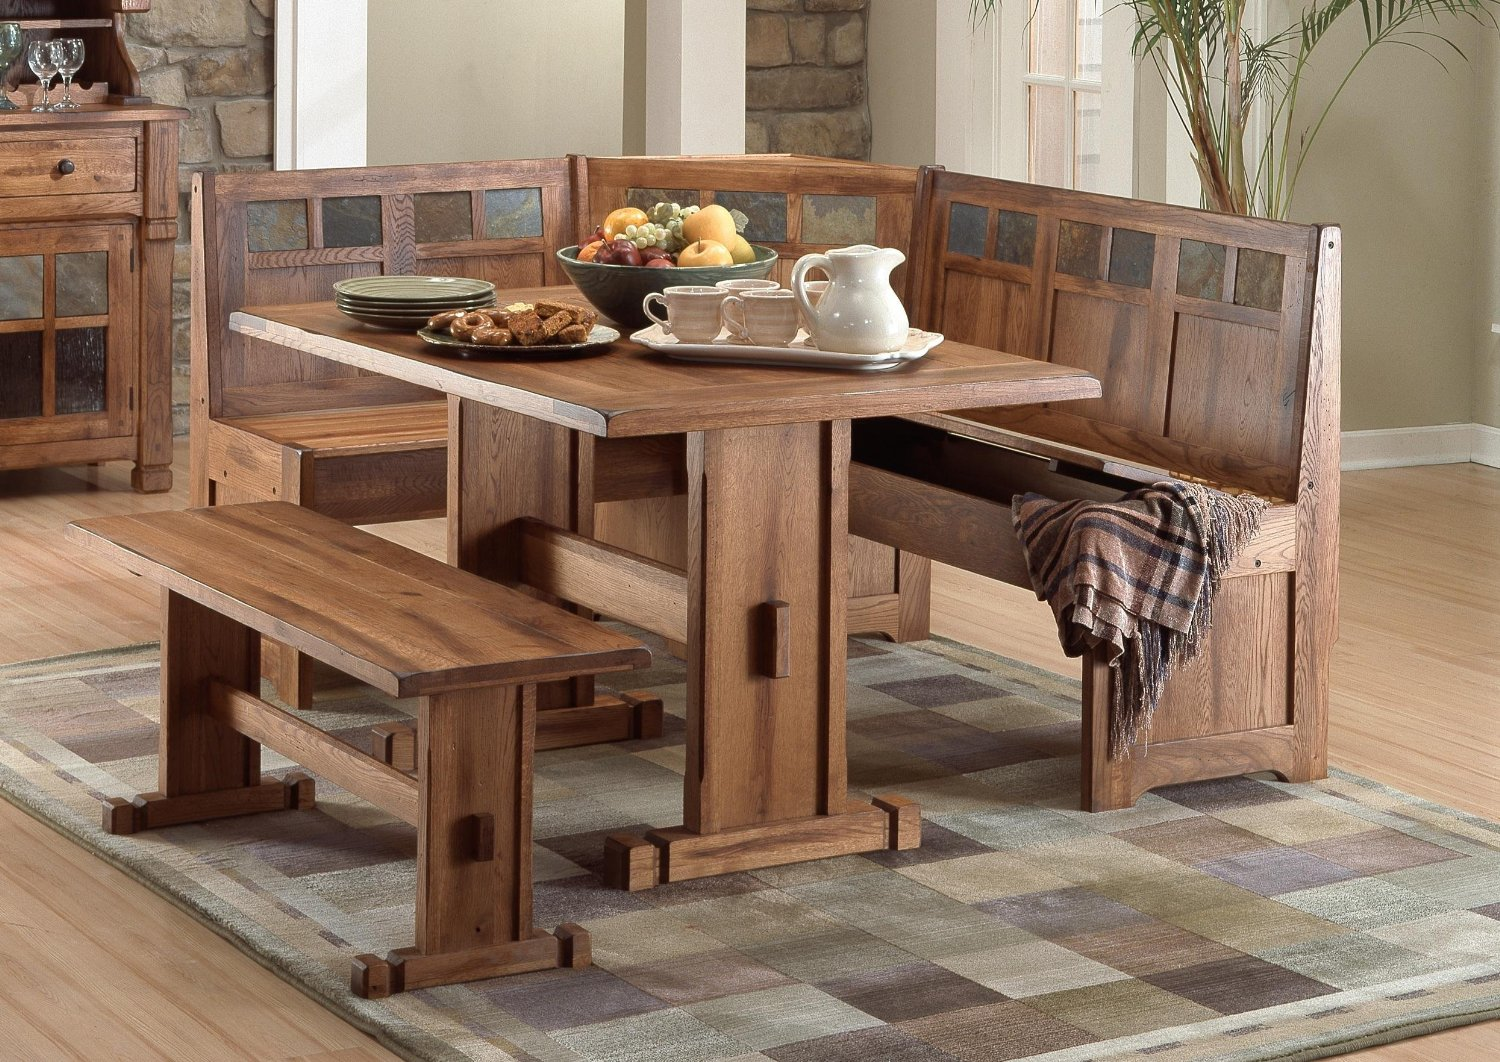 Bar height kitchen table set photo - 2